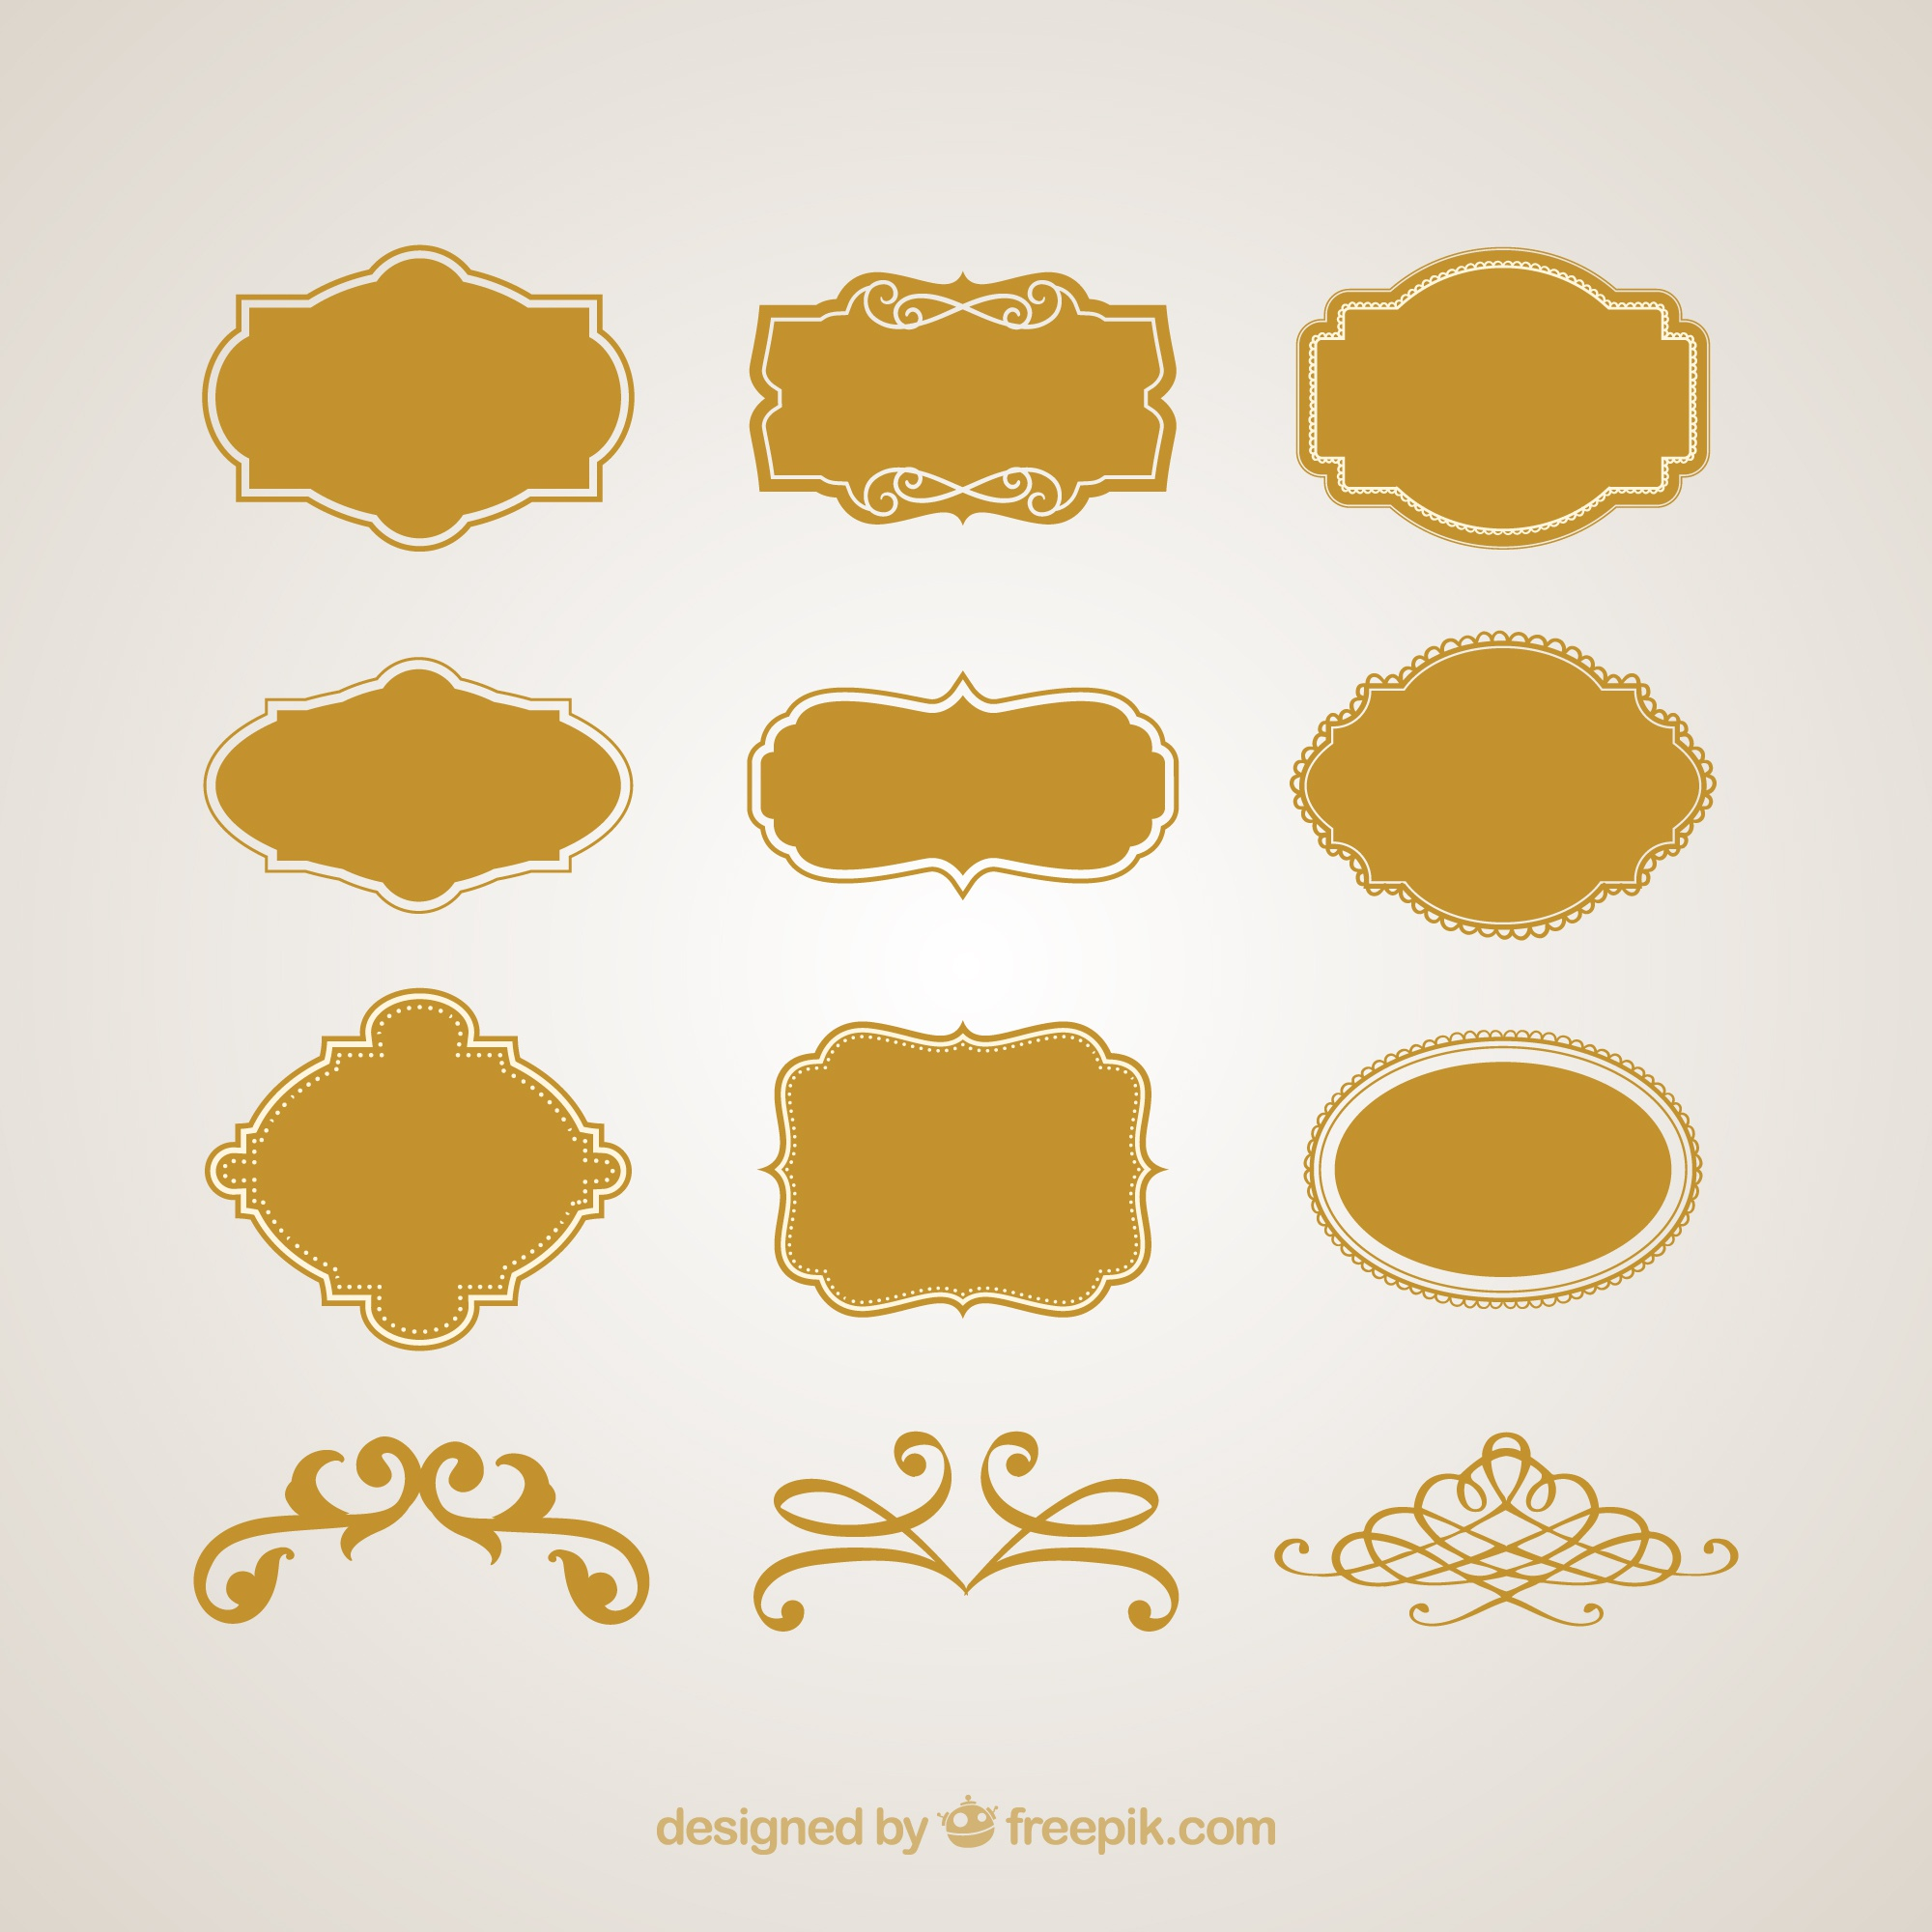 Vintage logos frames and signs vector set